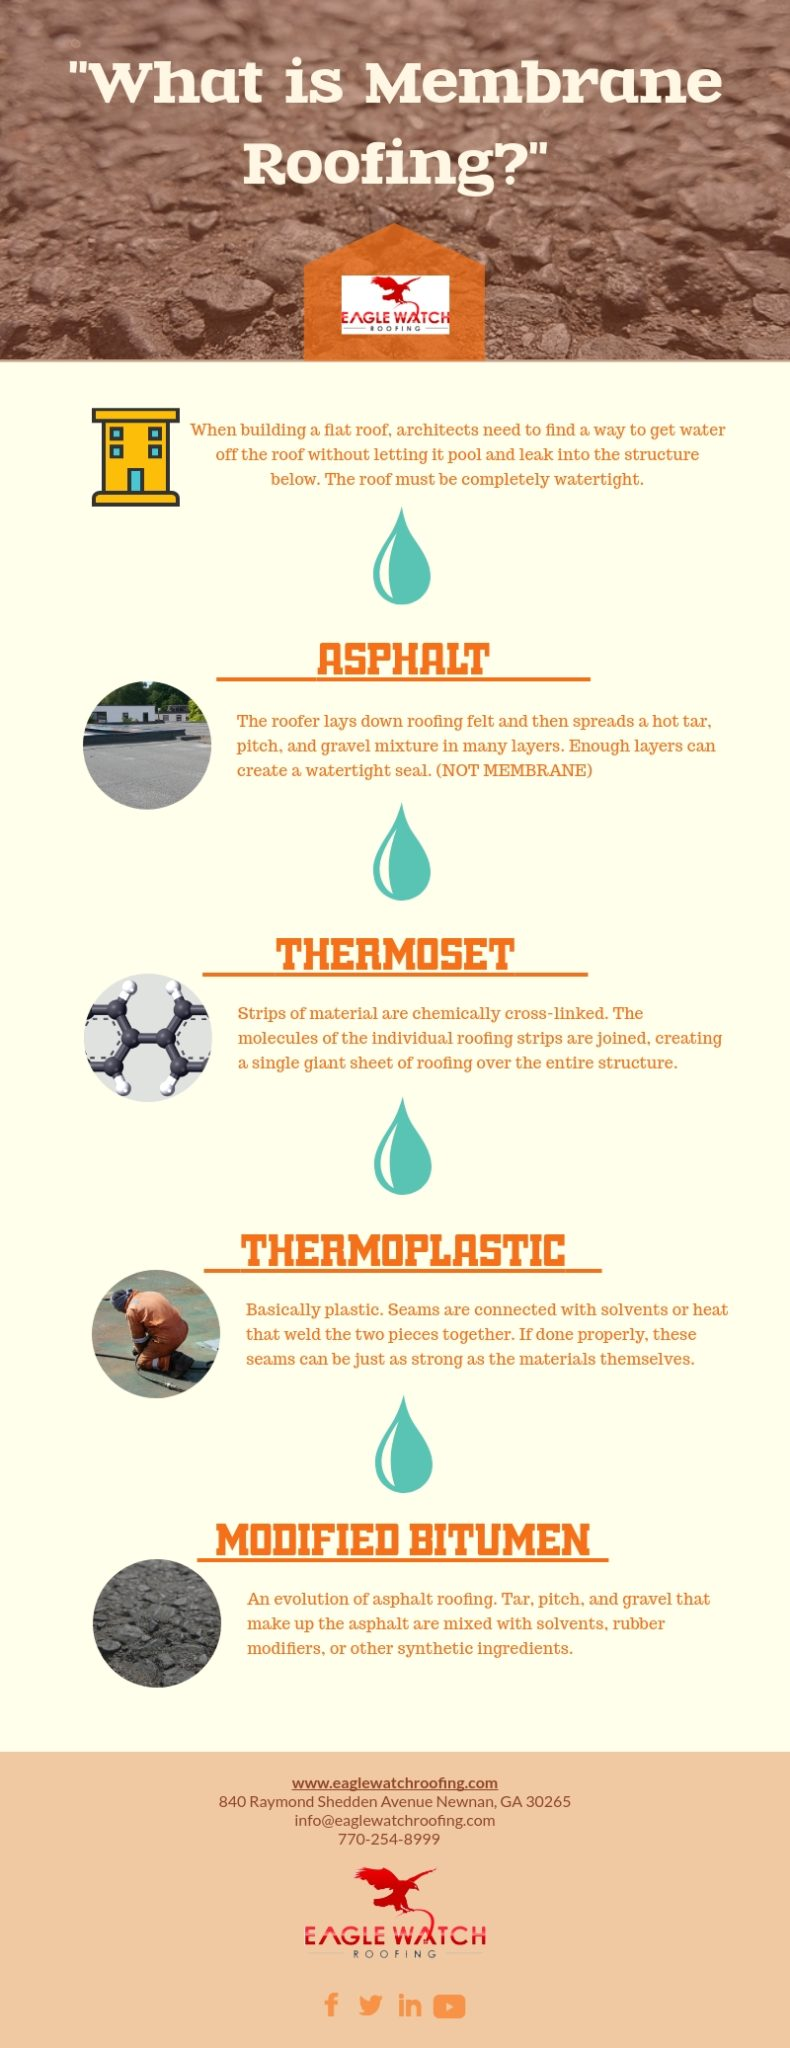 What is Membrane Roofing [infographic]